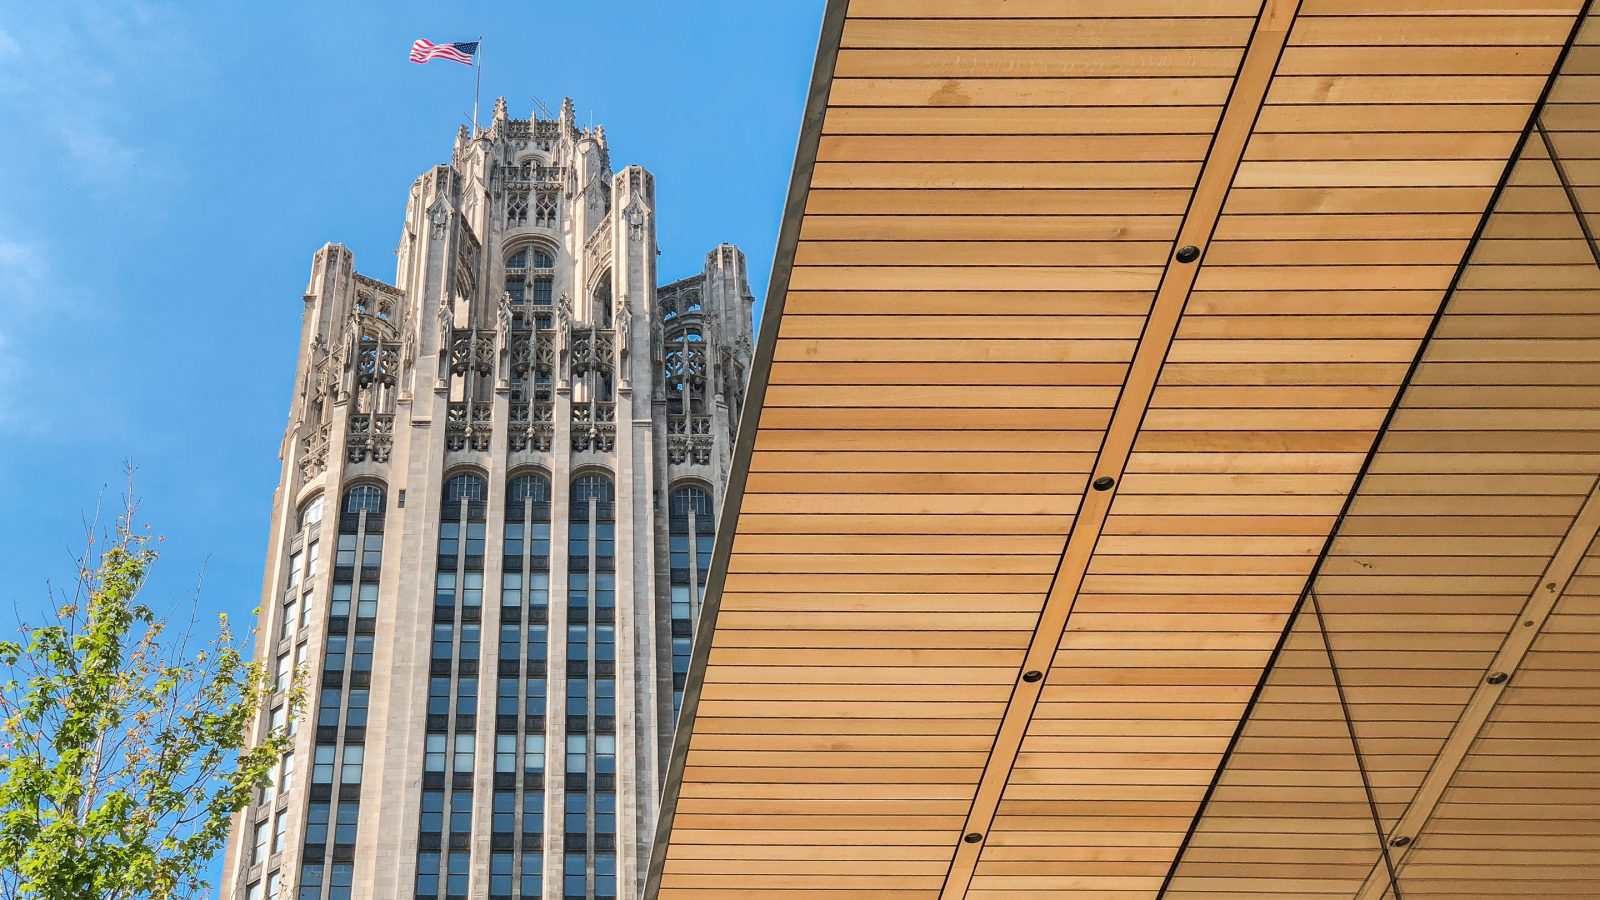 Apple collaborates with the Chicago Architecture Biennial on sessions studying the city